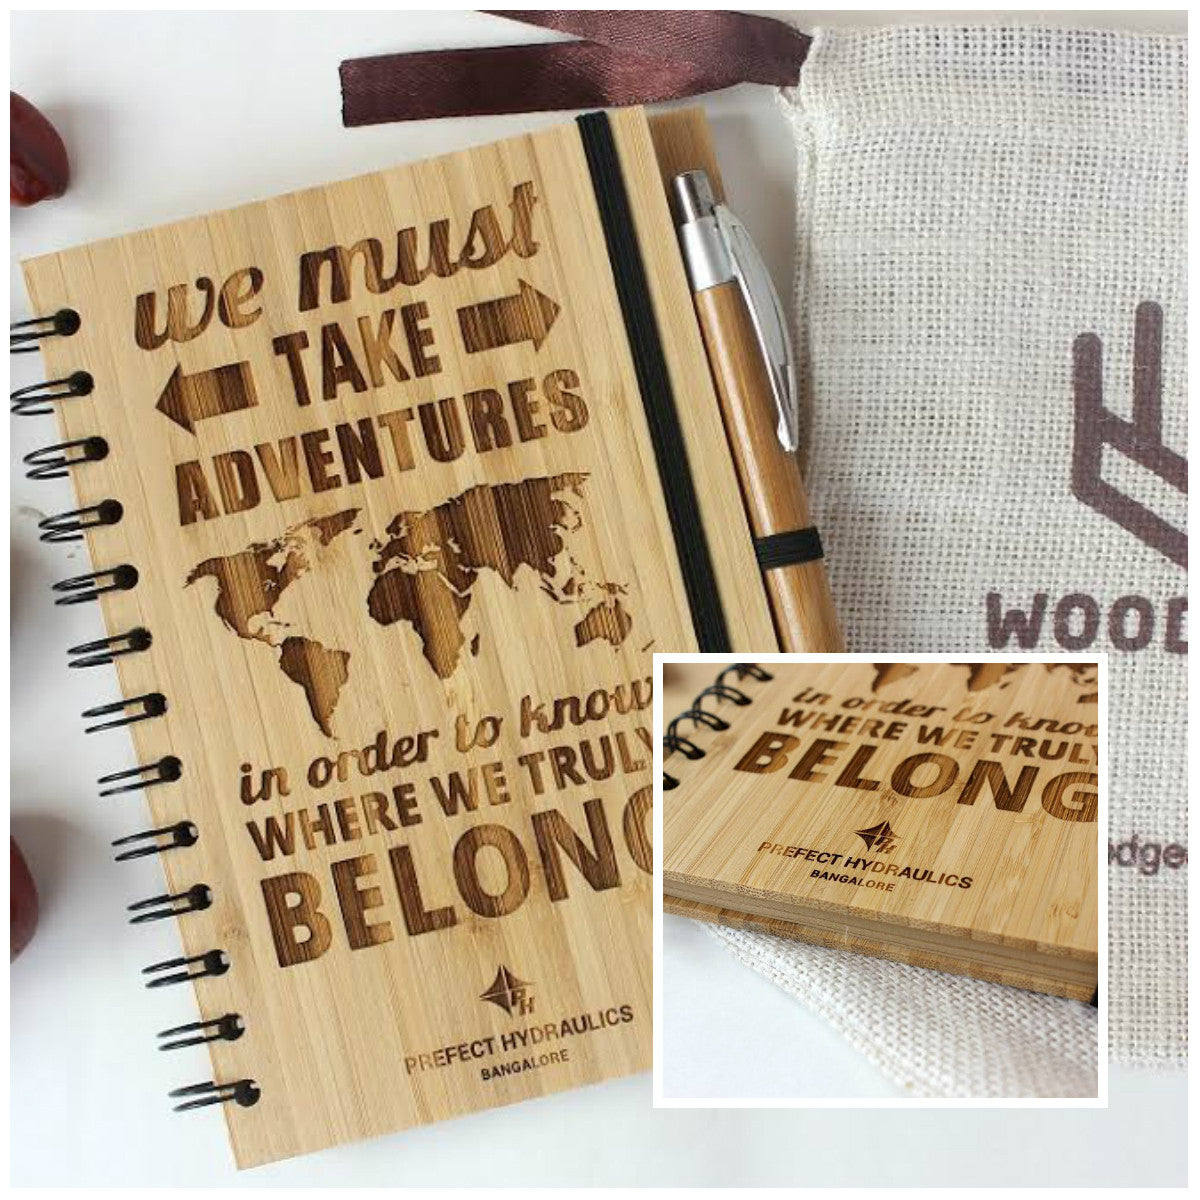 Corporate gifts - Custom engraved notebook for Prefect Hydraulics - Wood Journal - Woodgeek Store